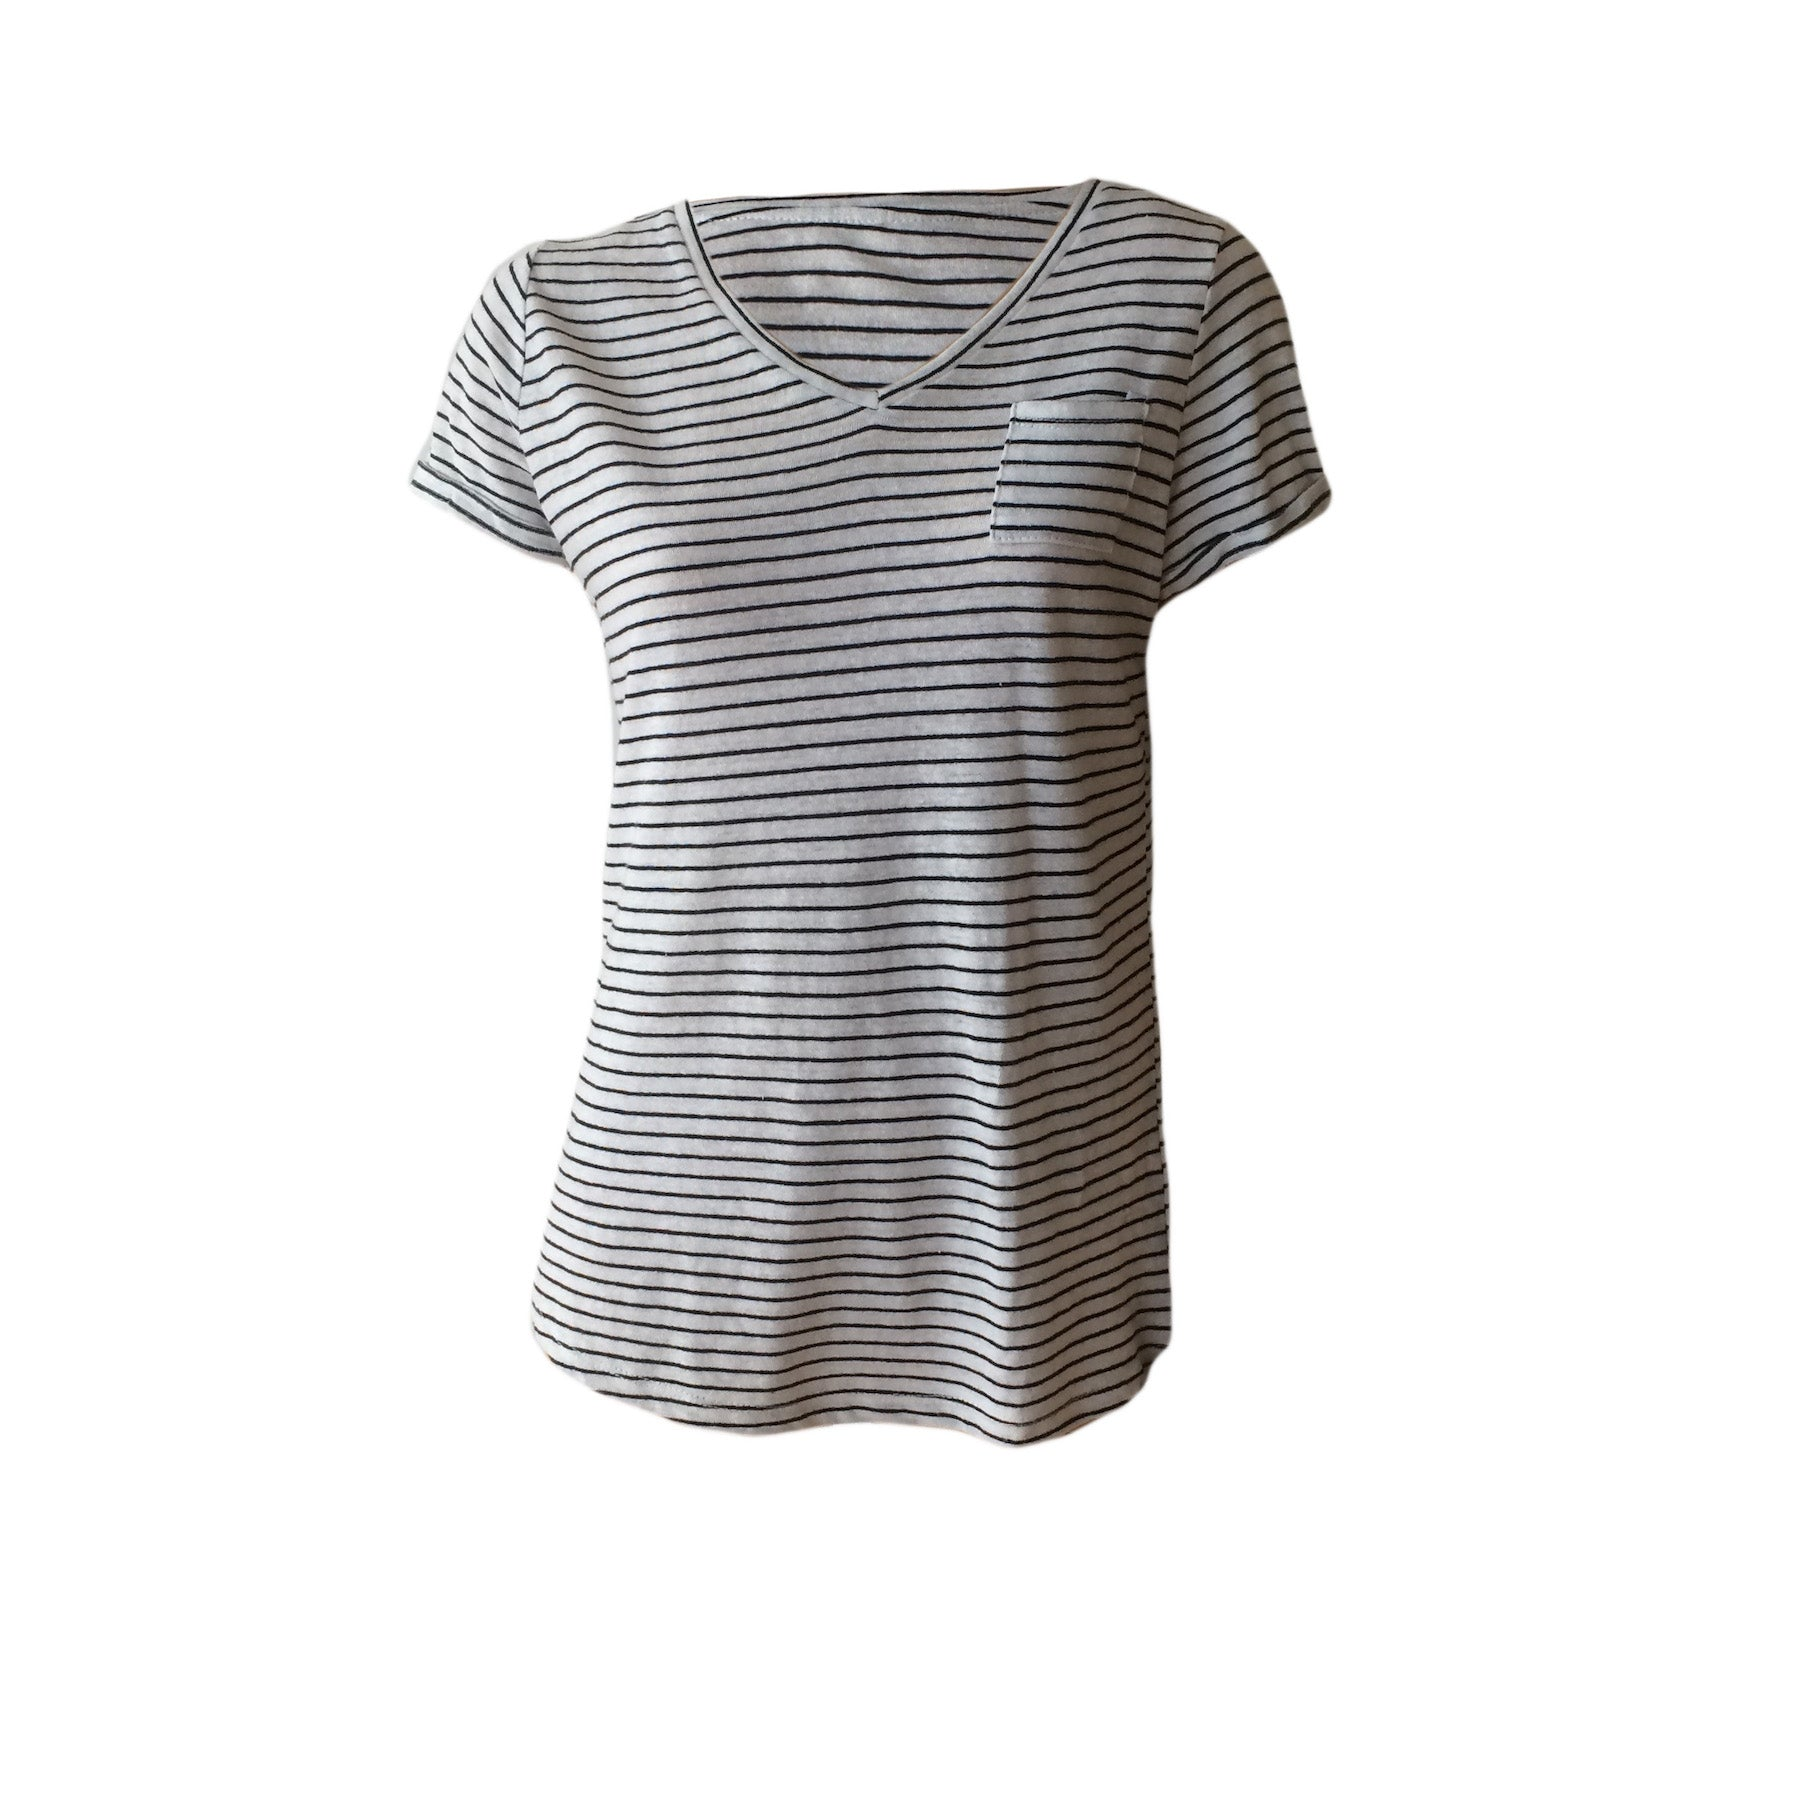 This great V Neck Pocket Tee in White with narrow black stripes by US label Hayden LA is the perfect Summer Tee. Combine with shorts or jeans for a fresh look.